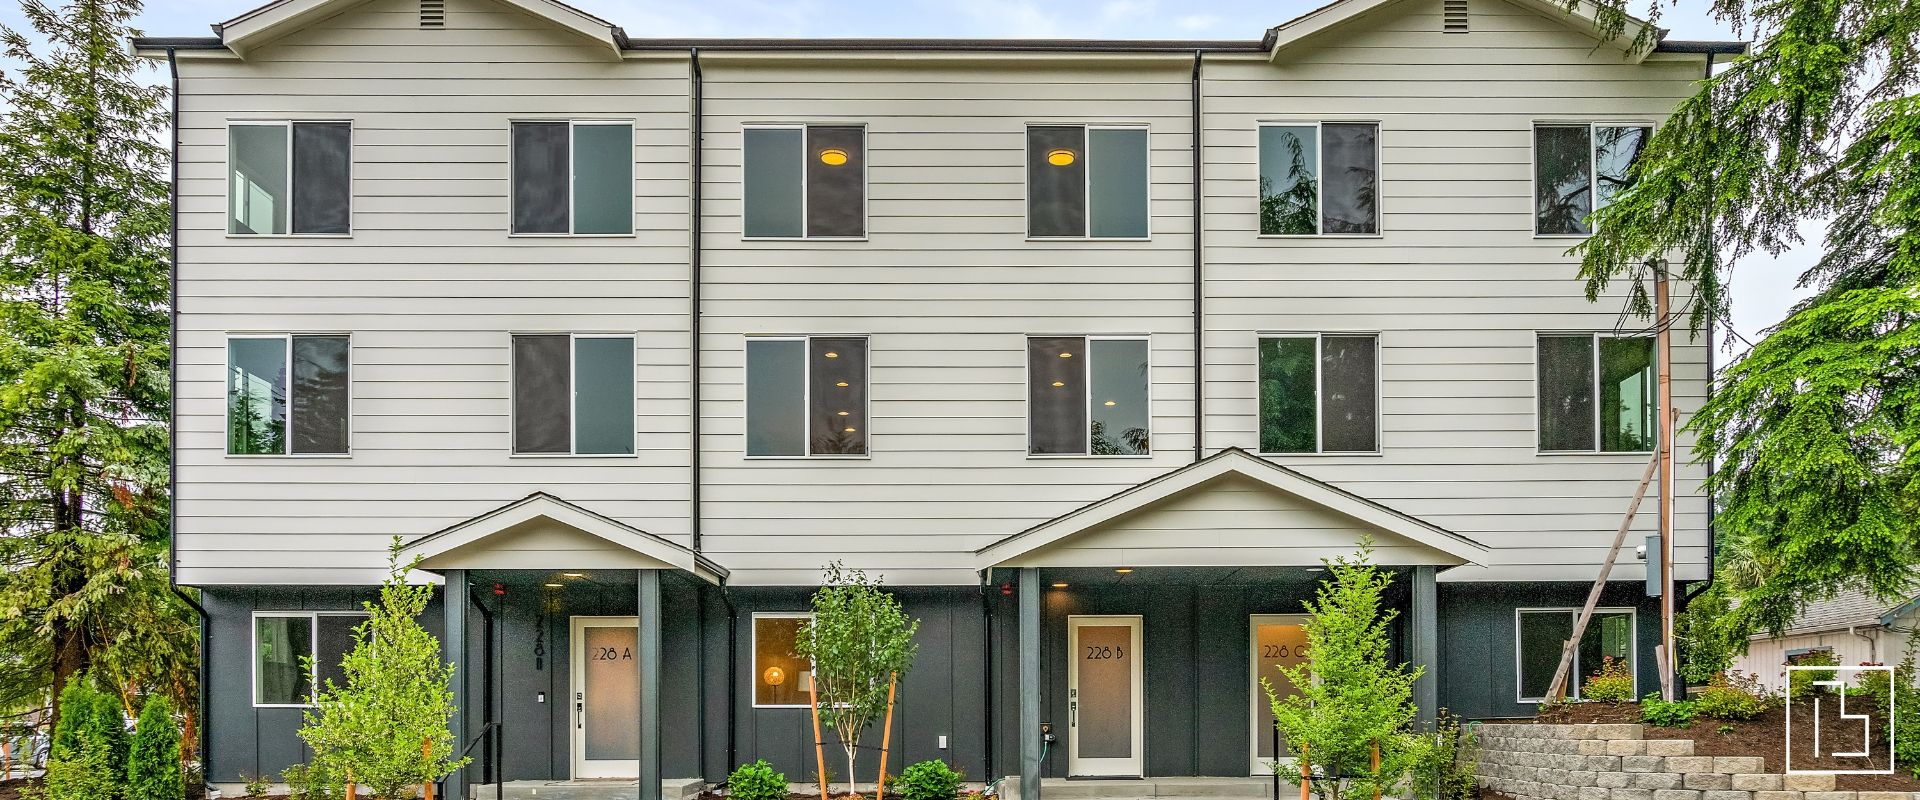 180th townhomes exterior home